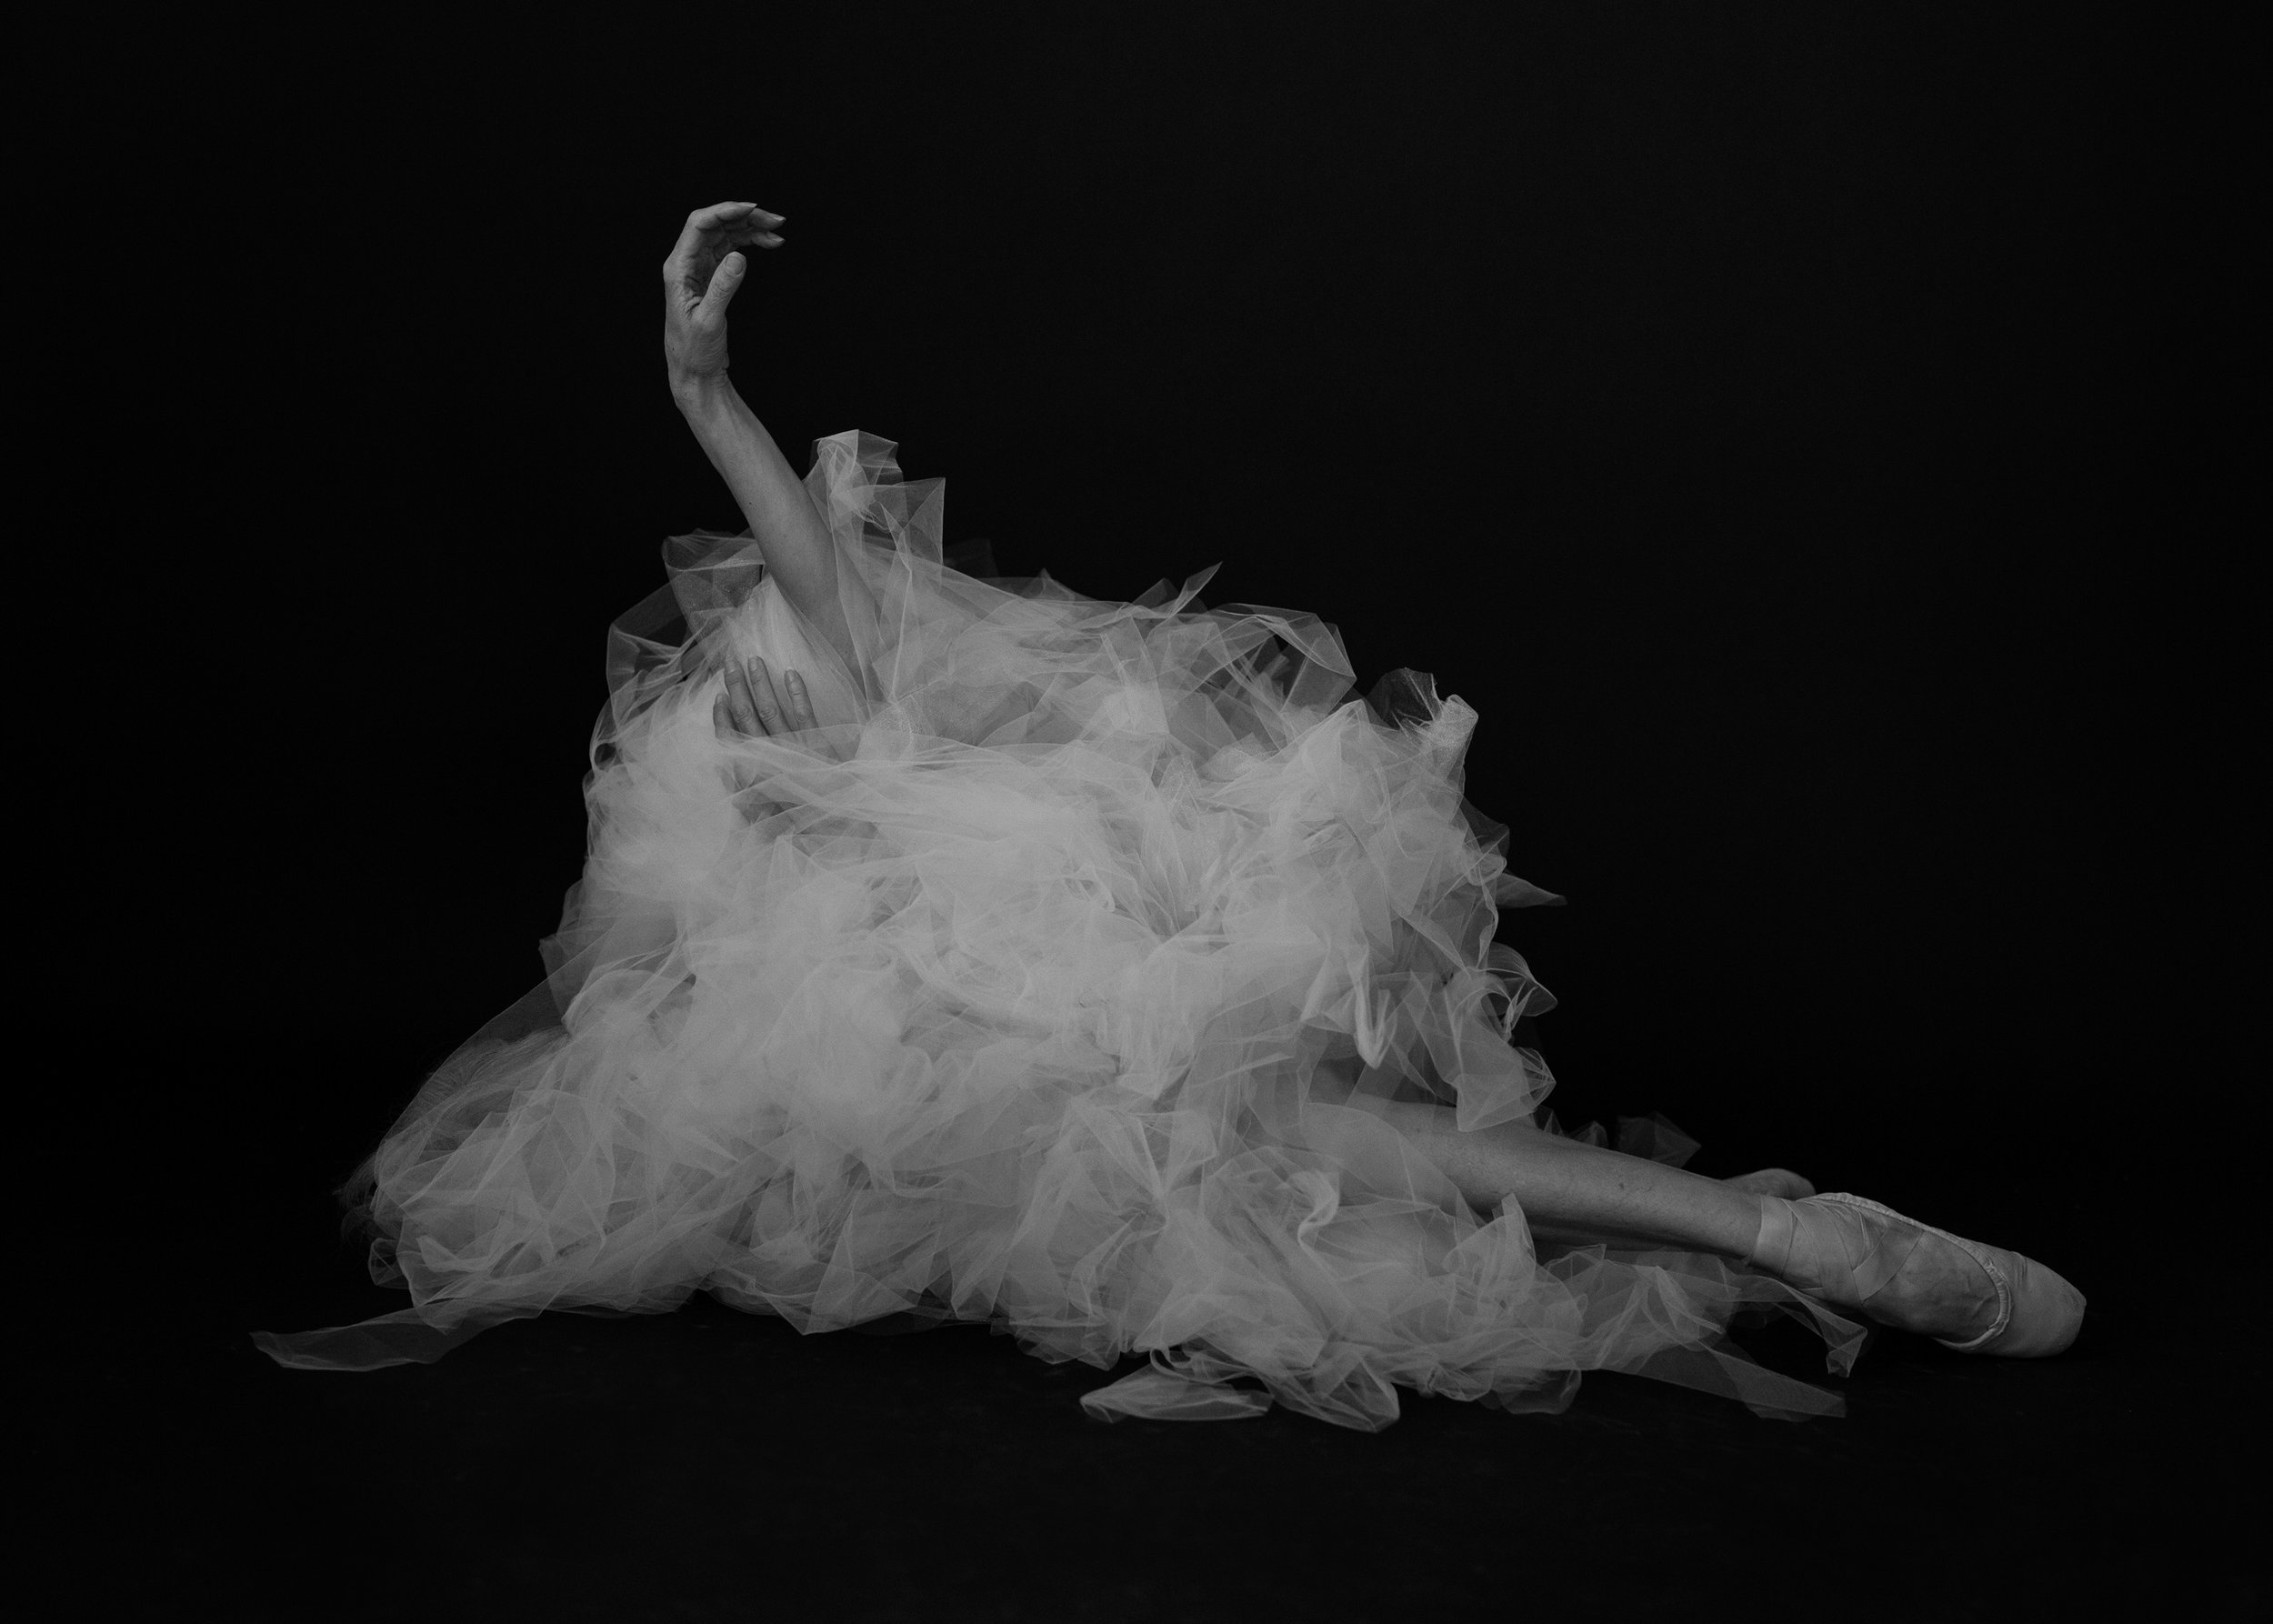 Valerie Madonia dances with tulle for fine art photo shoot with photographer Jennifer Koskinen, Merritt Portrait Studio